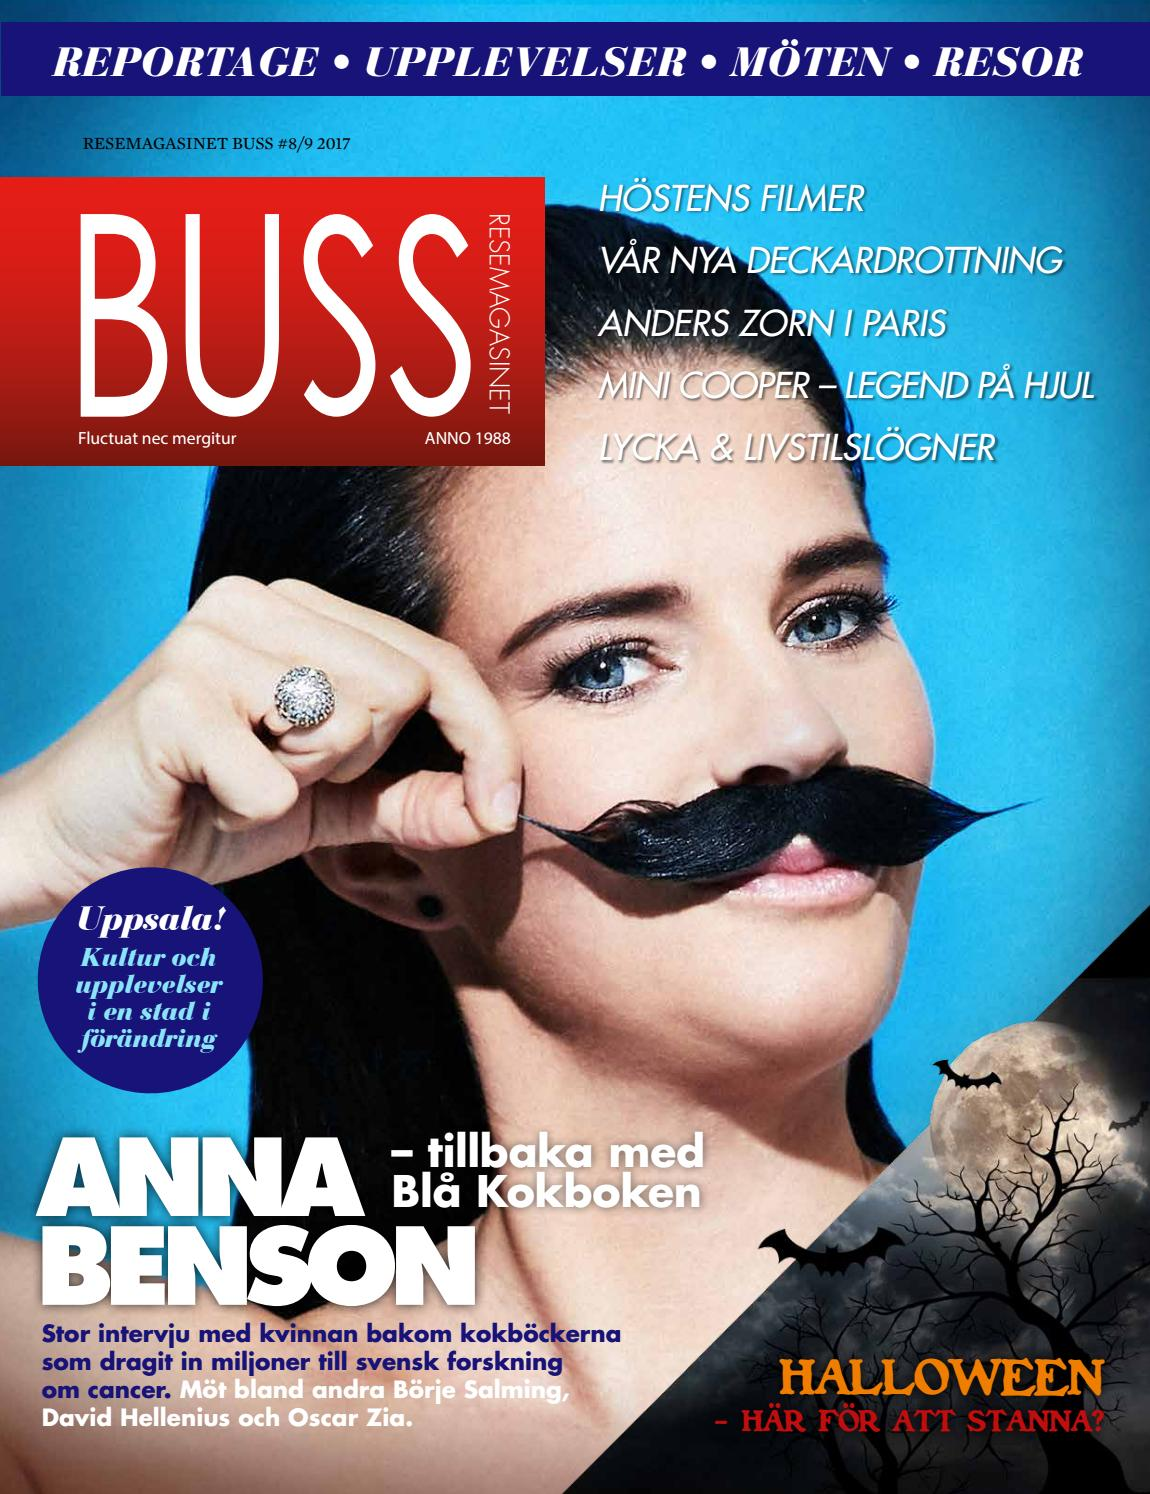 Resemagasinet Buss  8-9 2017 by resemagasinetbuss - issuu d59285d4fce3b